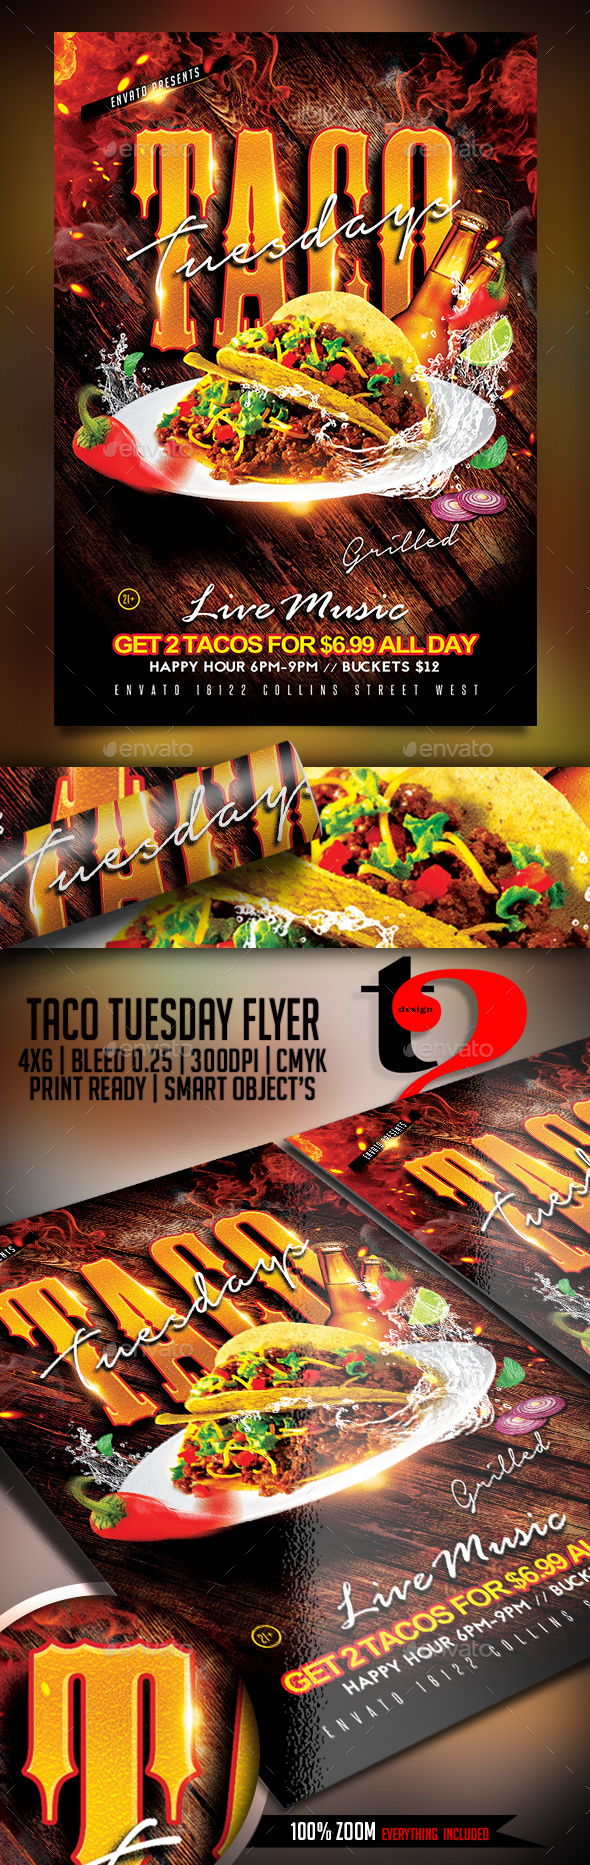 Taco Tuesday Flyer Template - Restaurant Flyers